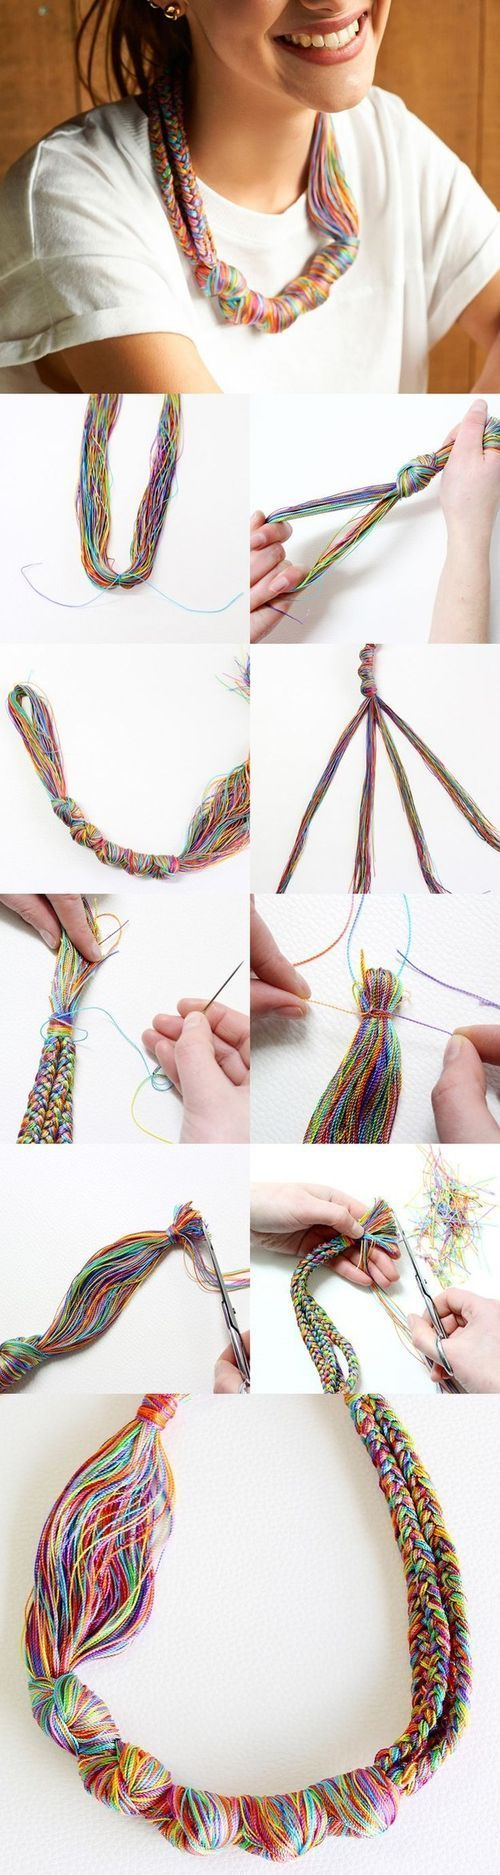 DIY Embroidery Floss Necklace! This is so feminine and versatile!